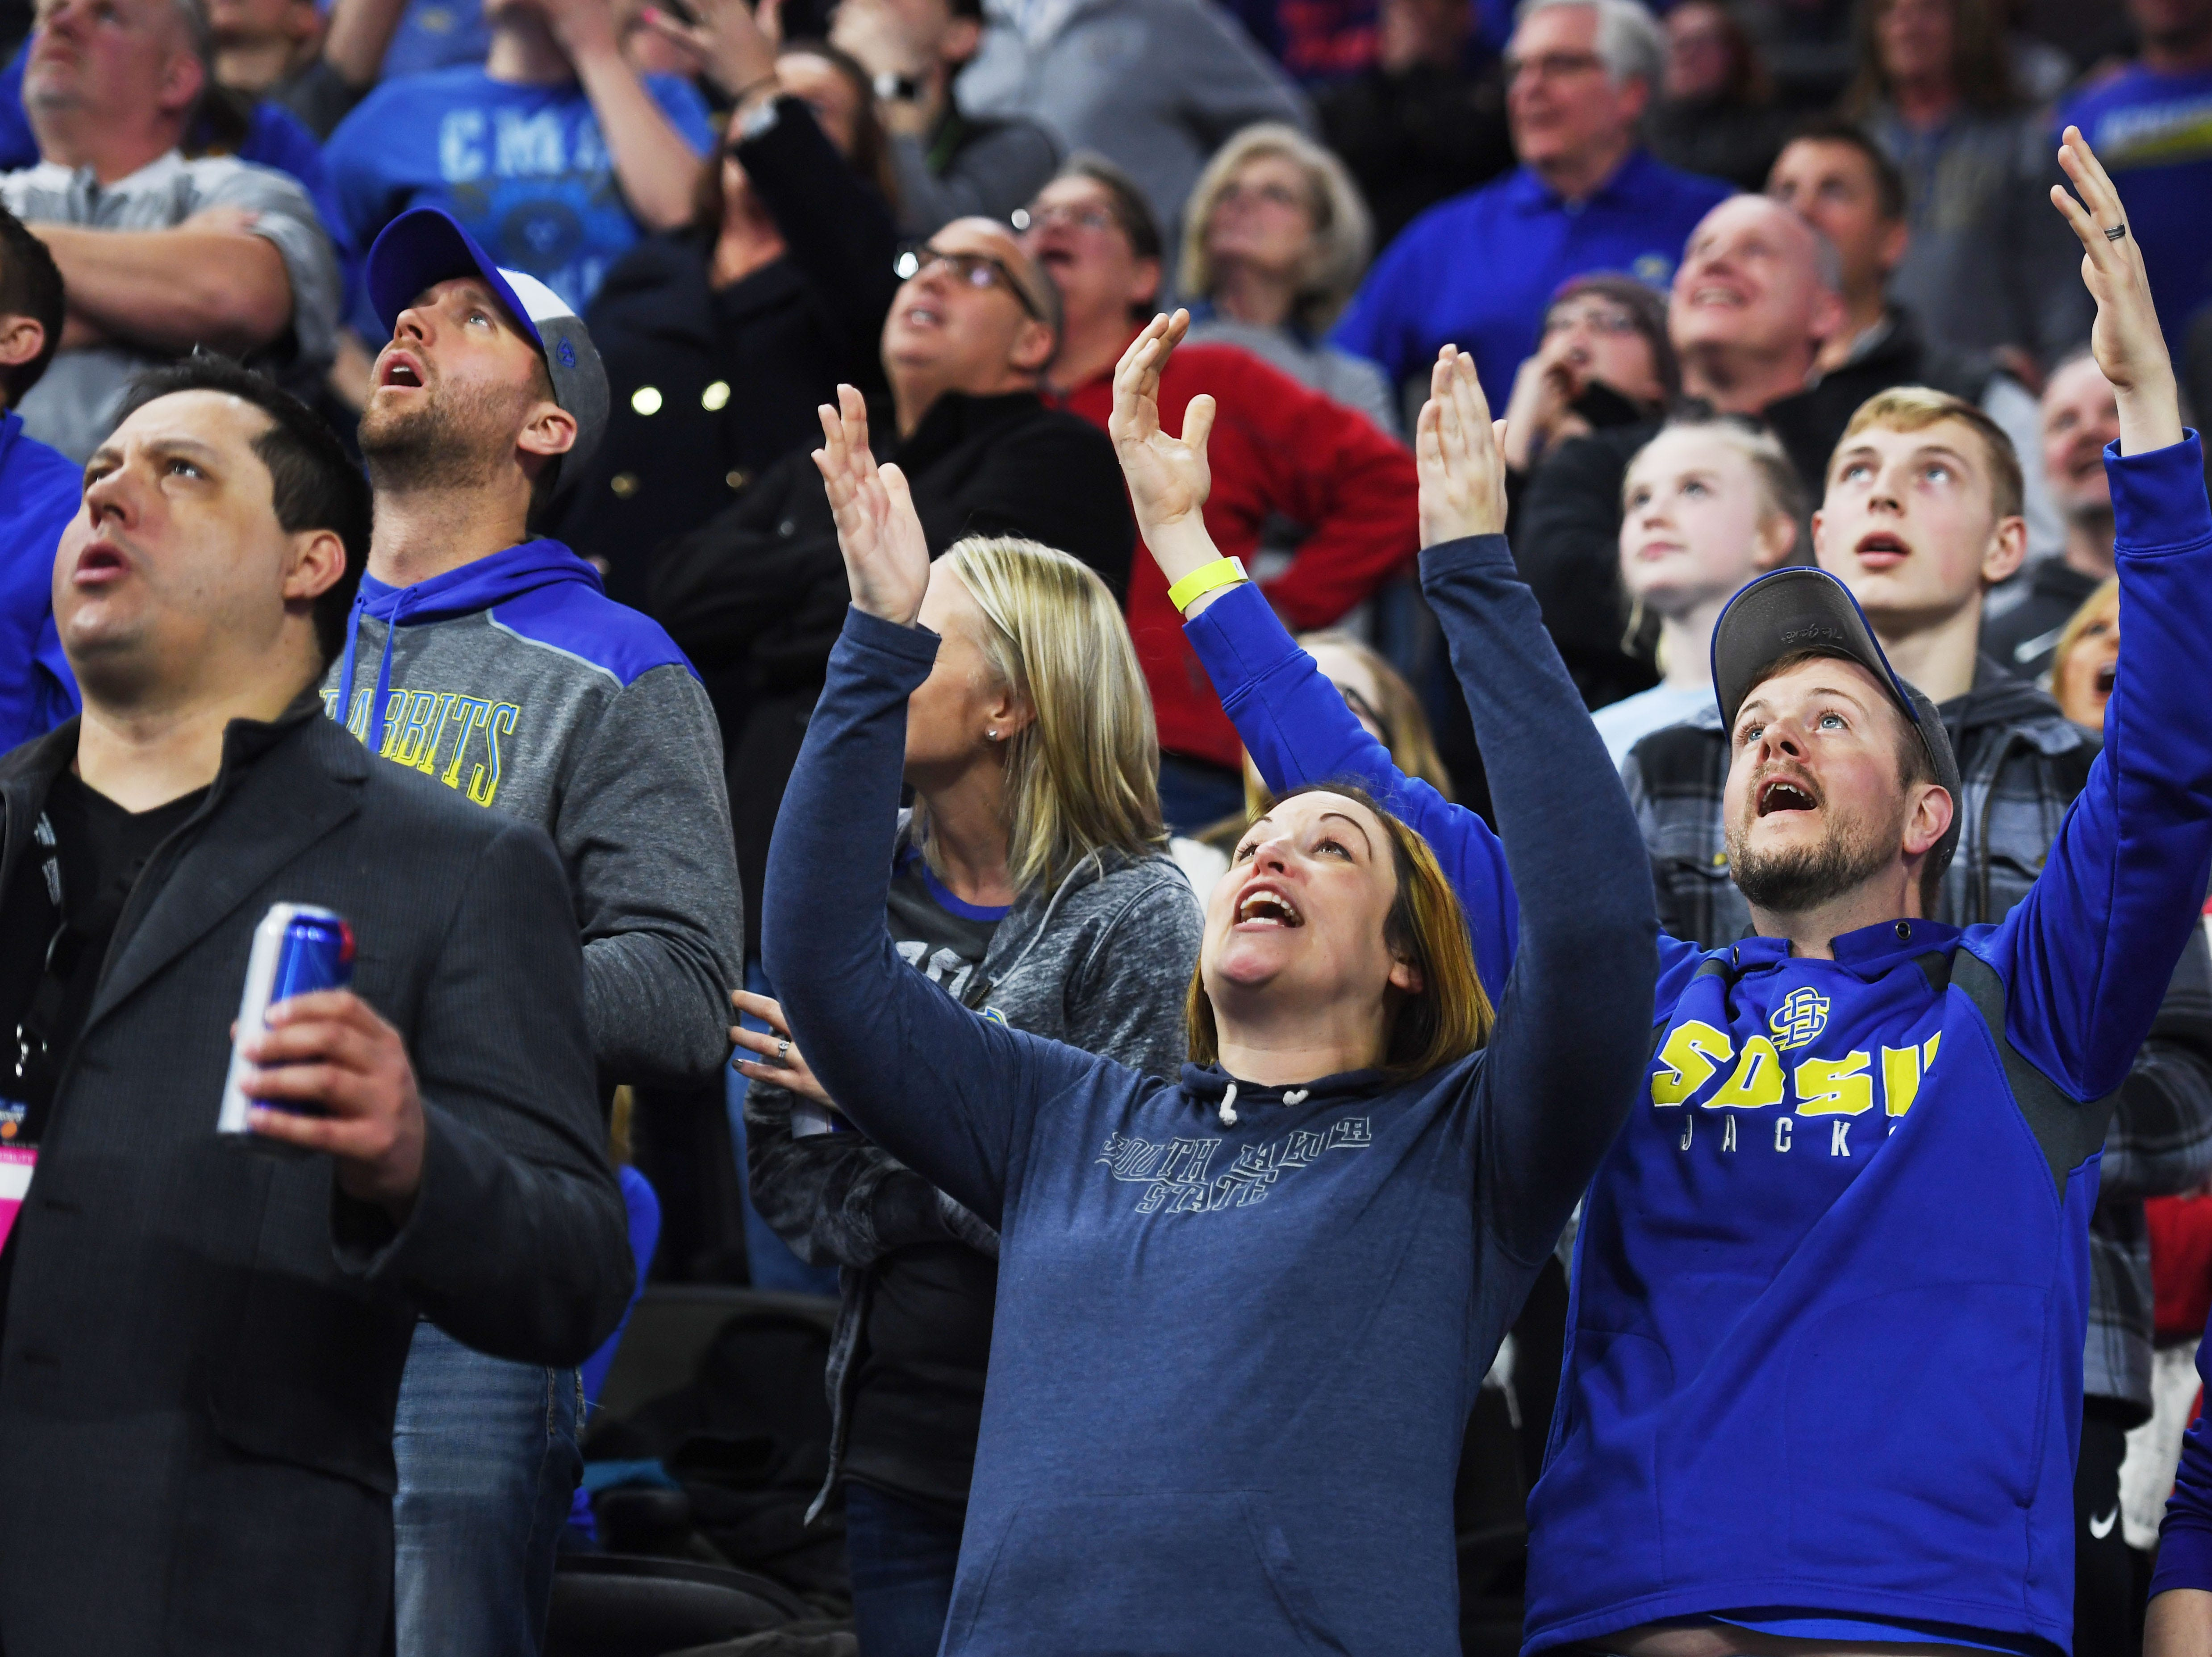 SDSU fans react to a call during the game against Western Illinois Saturday, March 9, in the Summit League tournament at the Denny Sanford Premier Center in Sioux Falls.